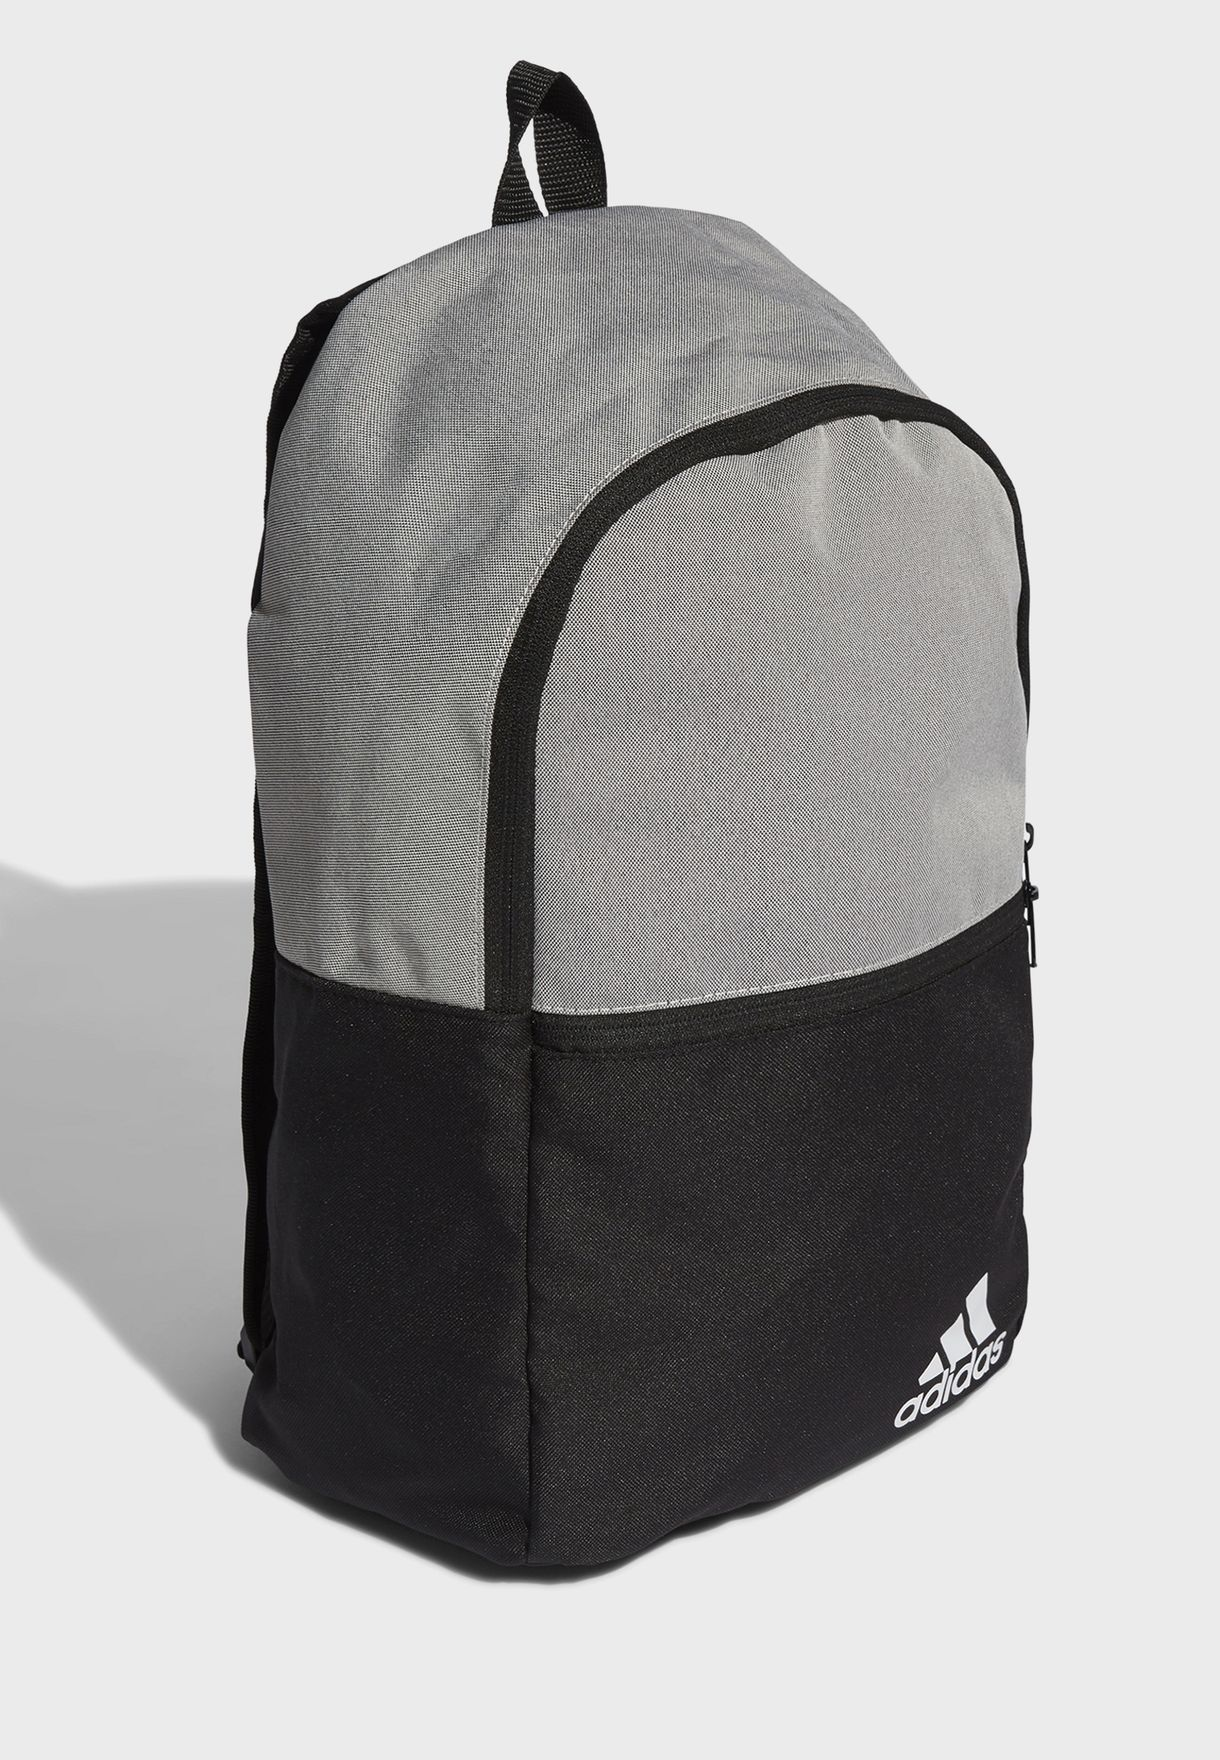 Daily Street Sports Unisex Backpack